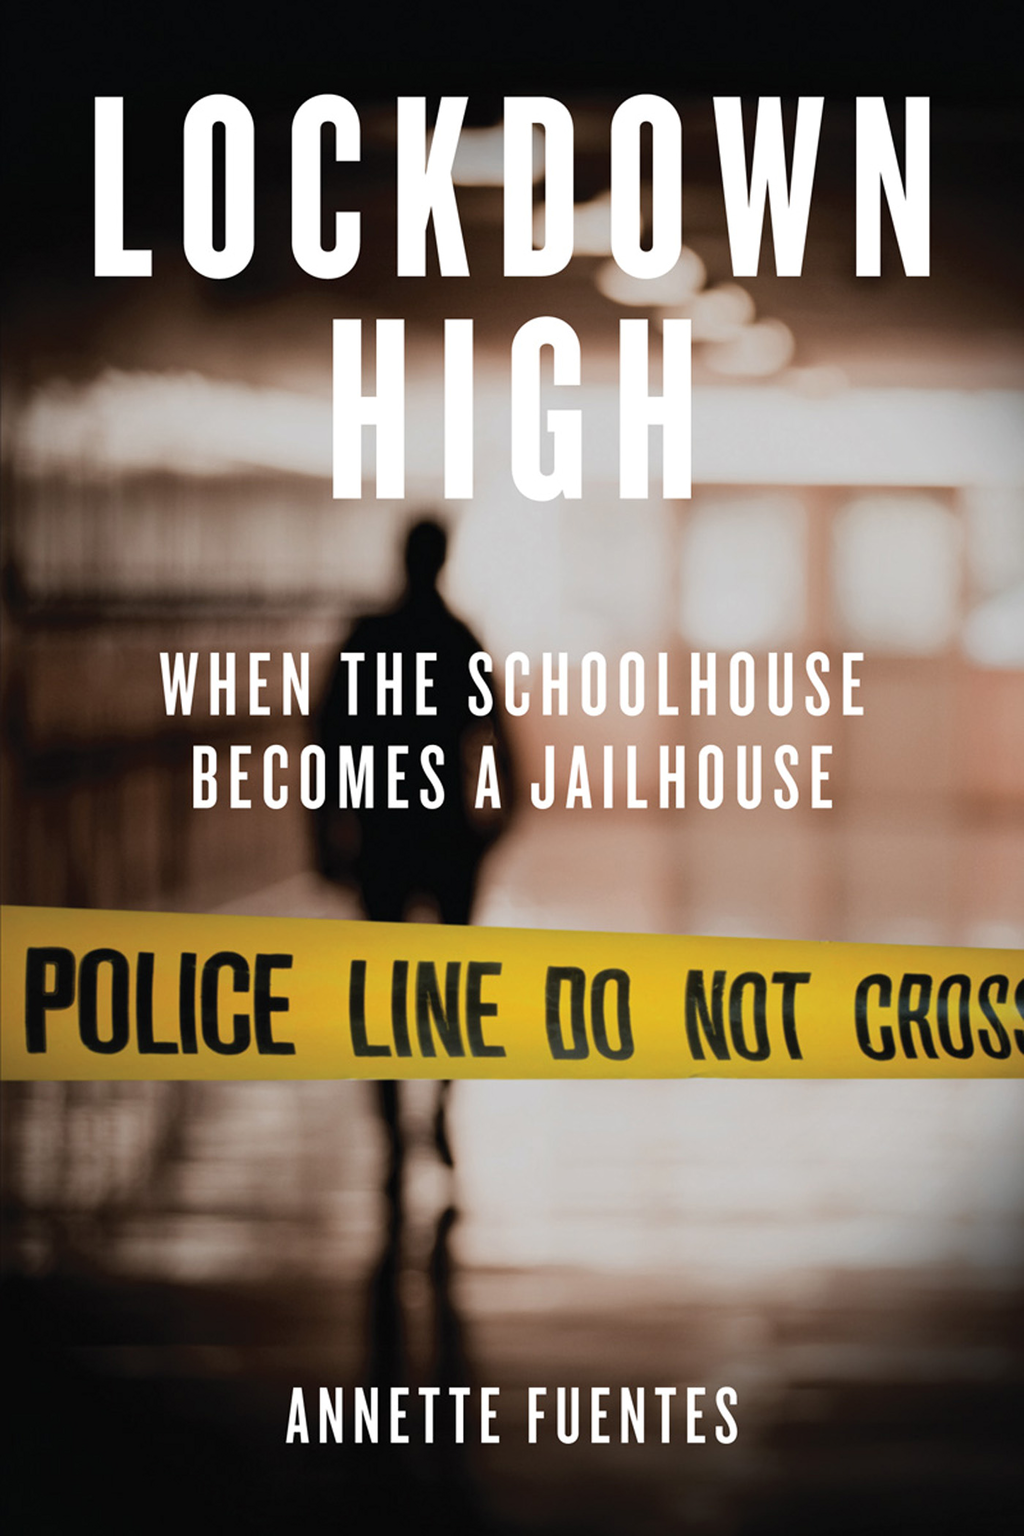 Lockdown High: When the Schoolhouse Becomes a Jailhouse By: Annette Fuentes